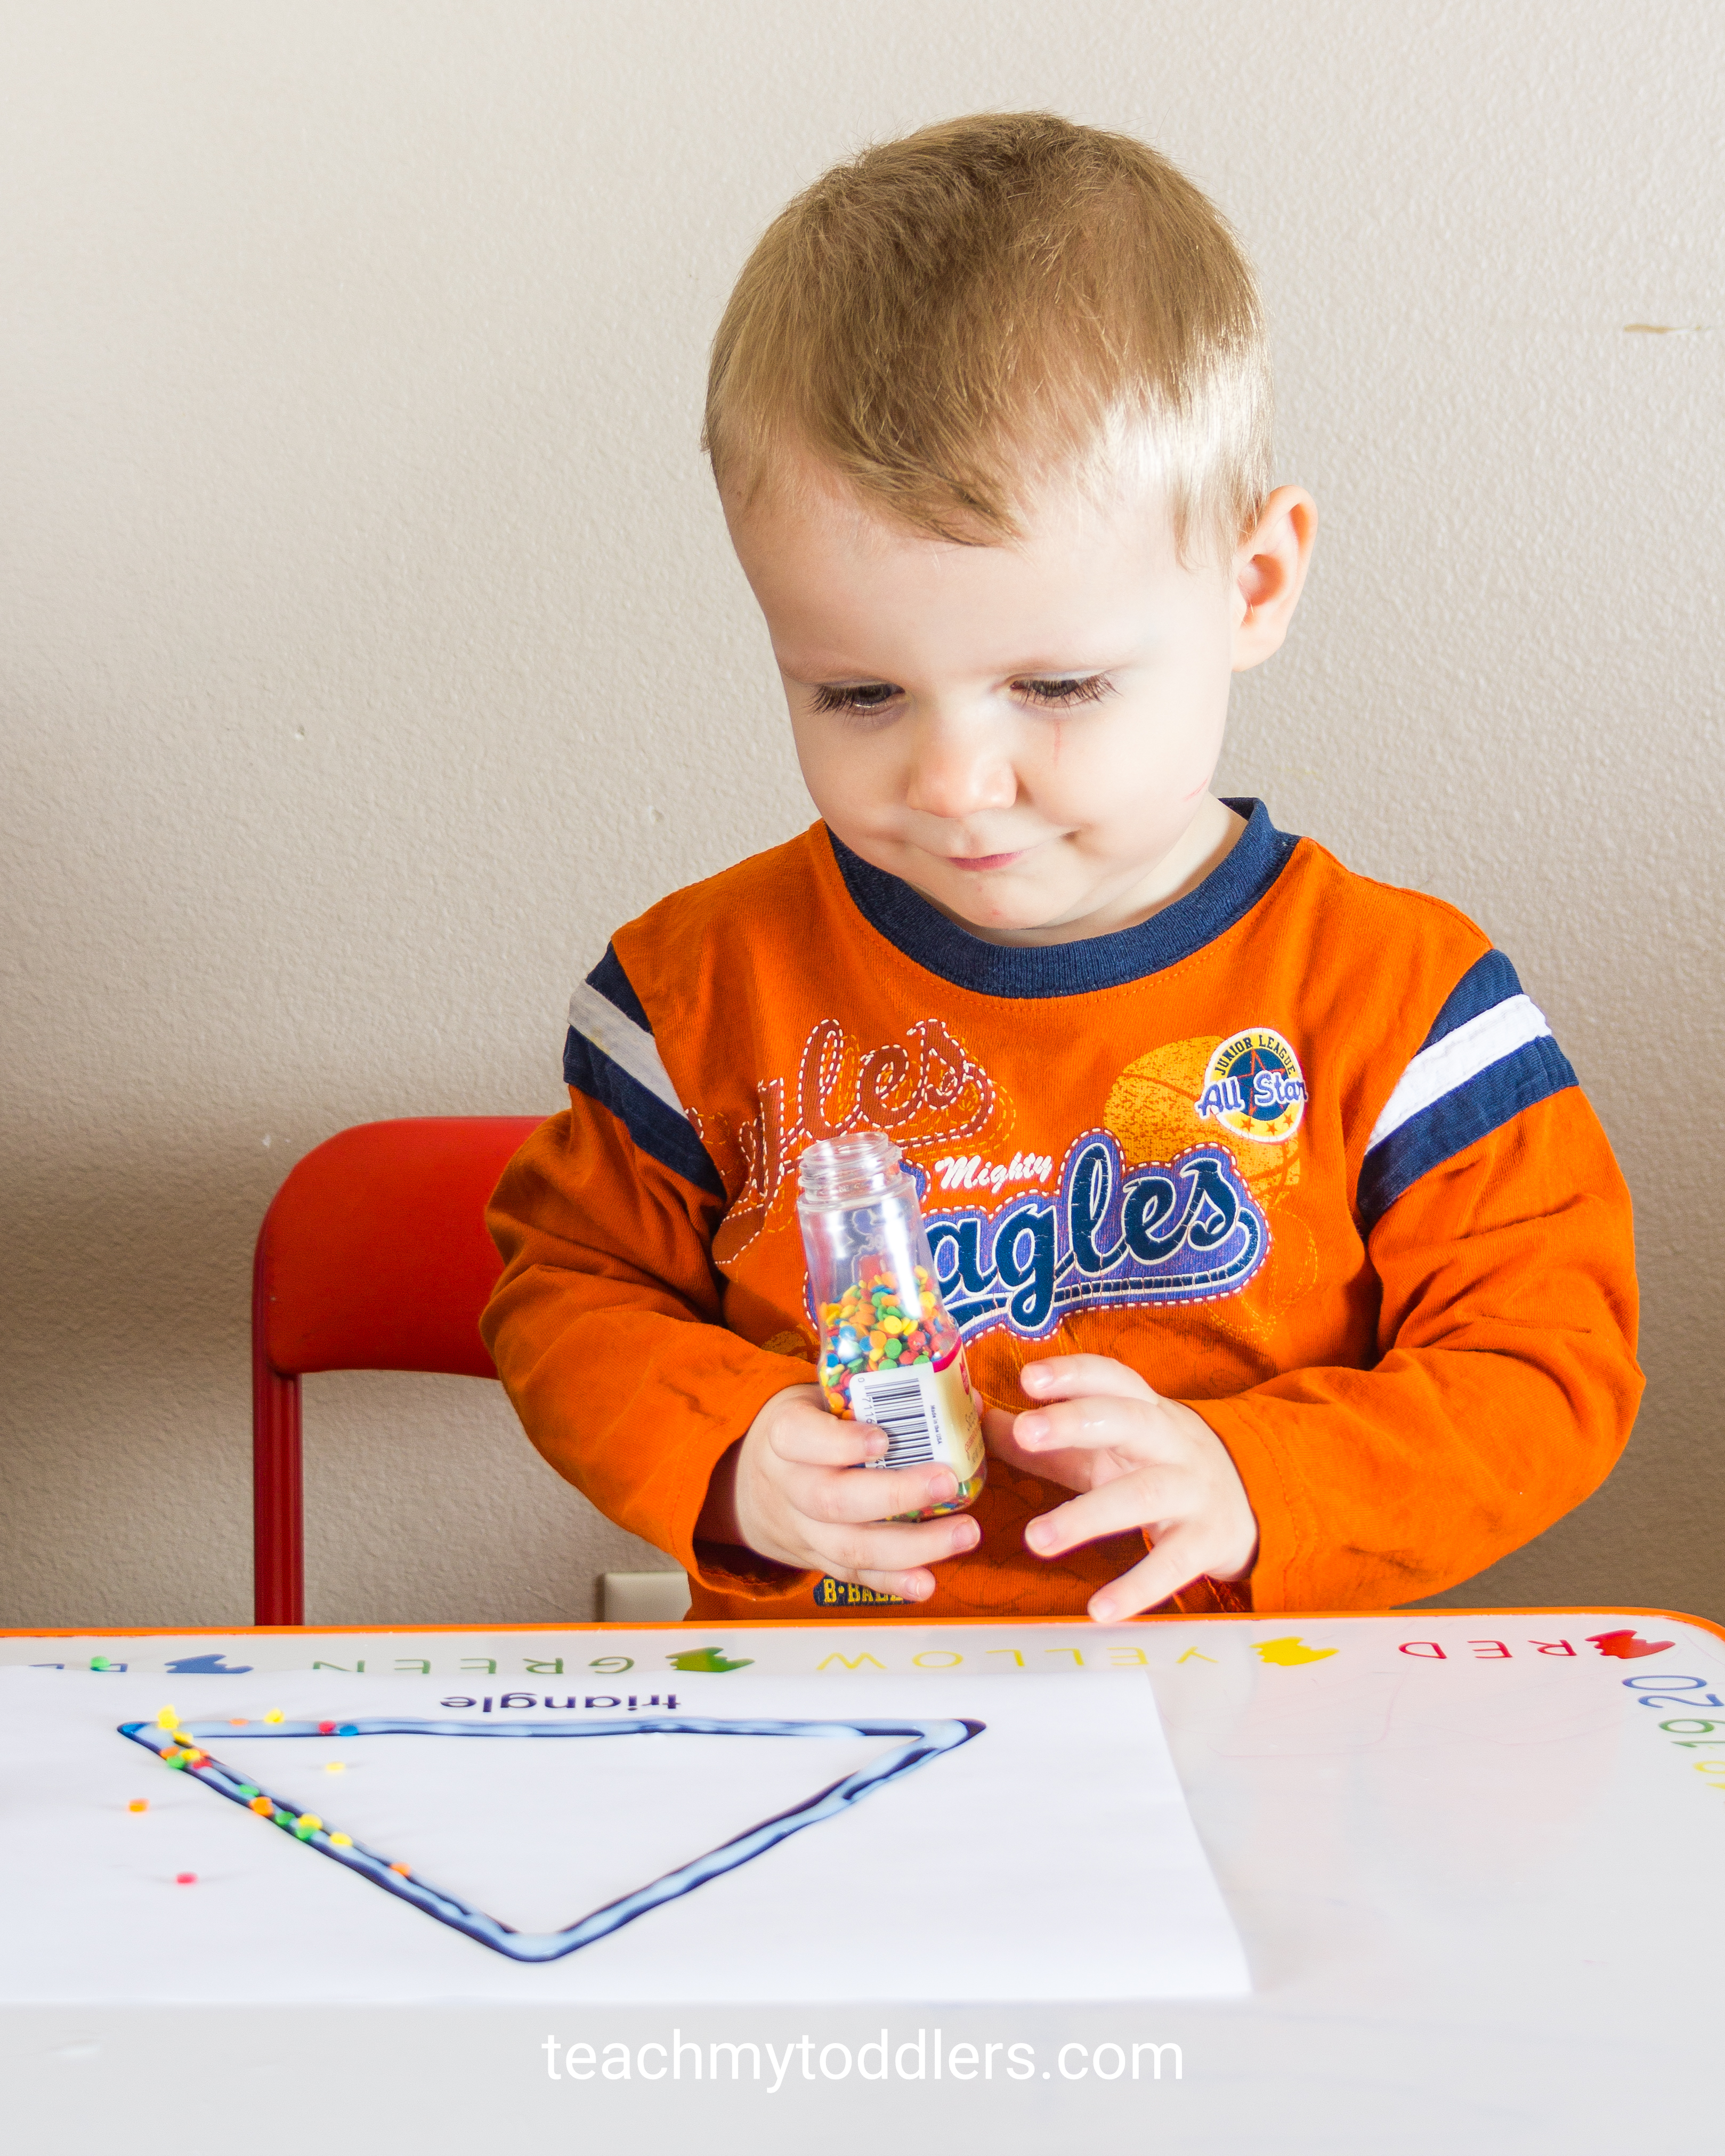 Find out how to use this fun decorating shapes activity to teach your toddlers shapes